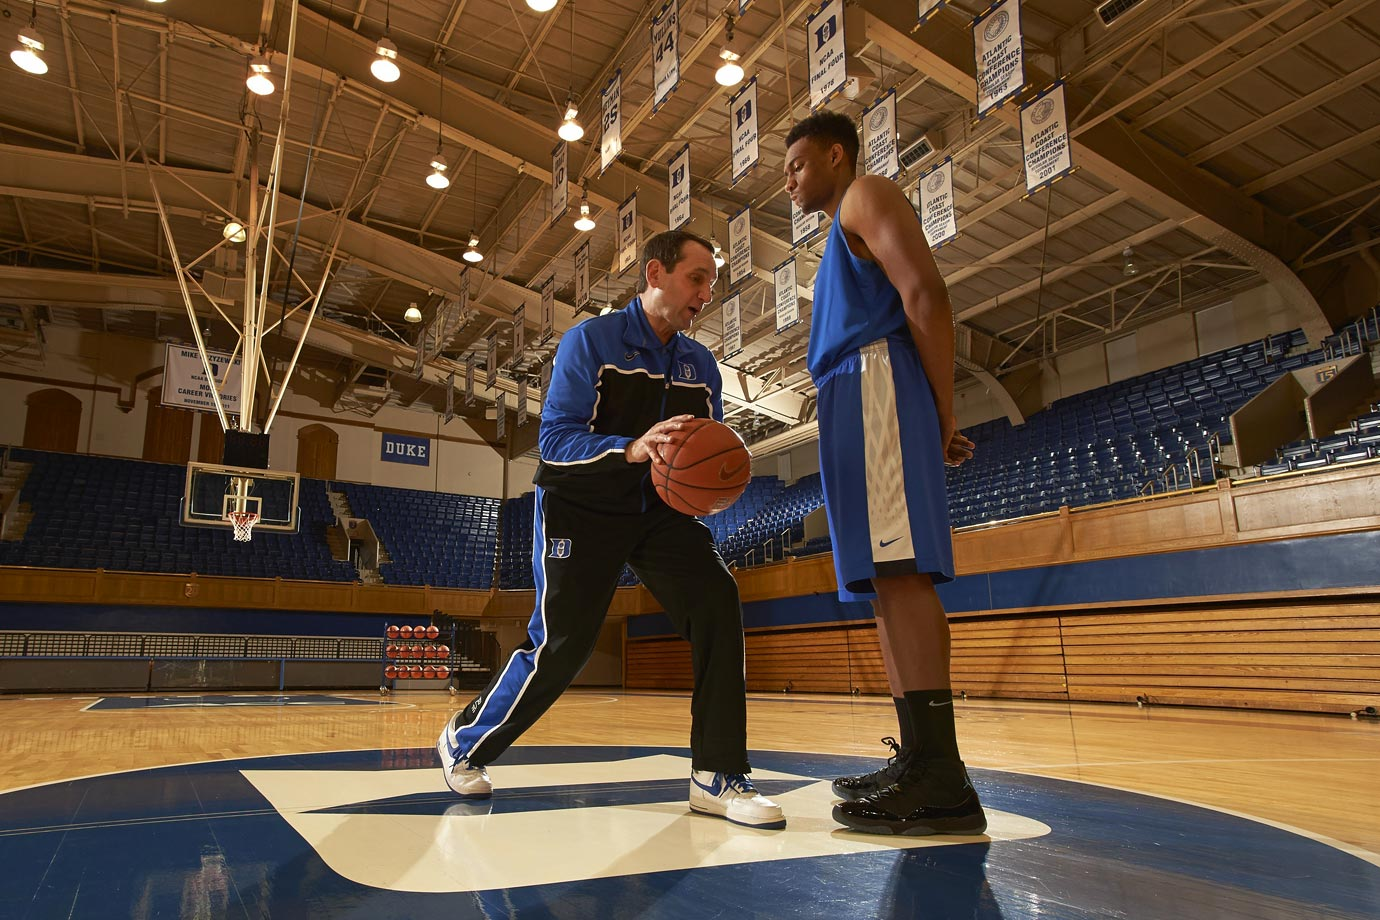 Mike Krzyzewski and Jabari Parker pose during a photo shoot at Cameron Indoor Stadium in 2014.